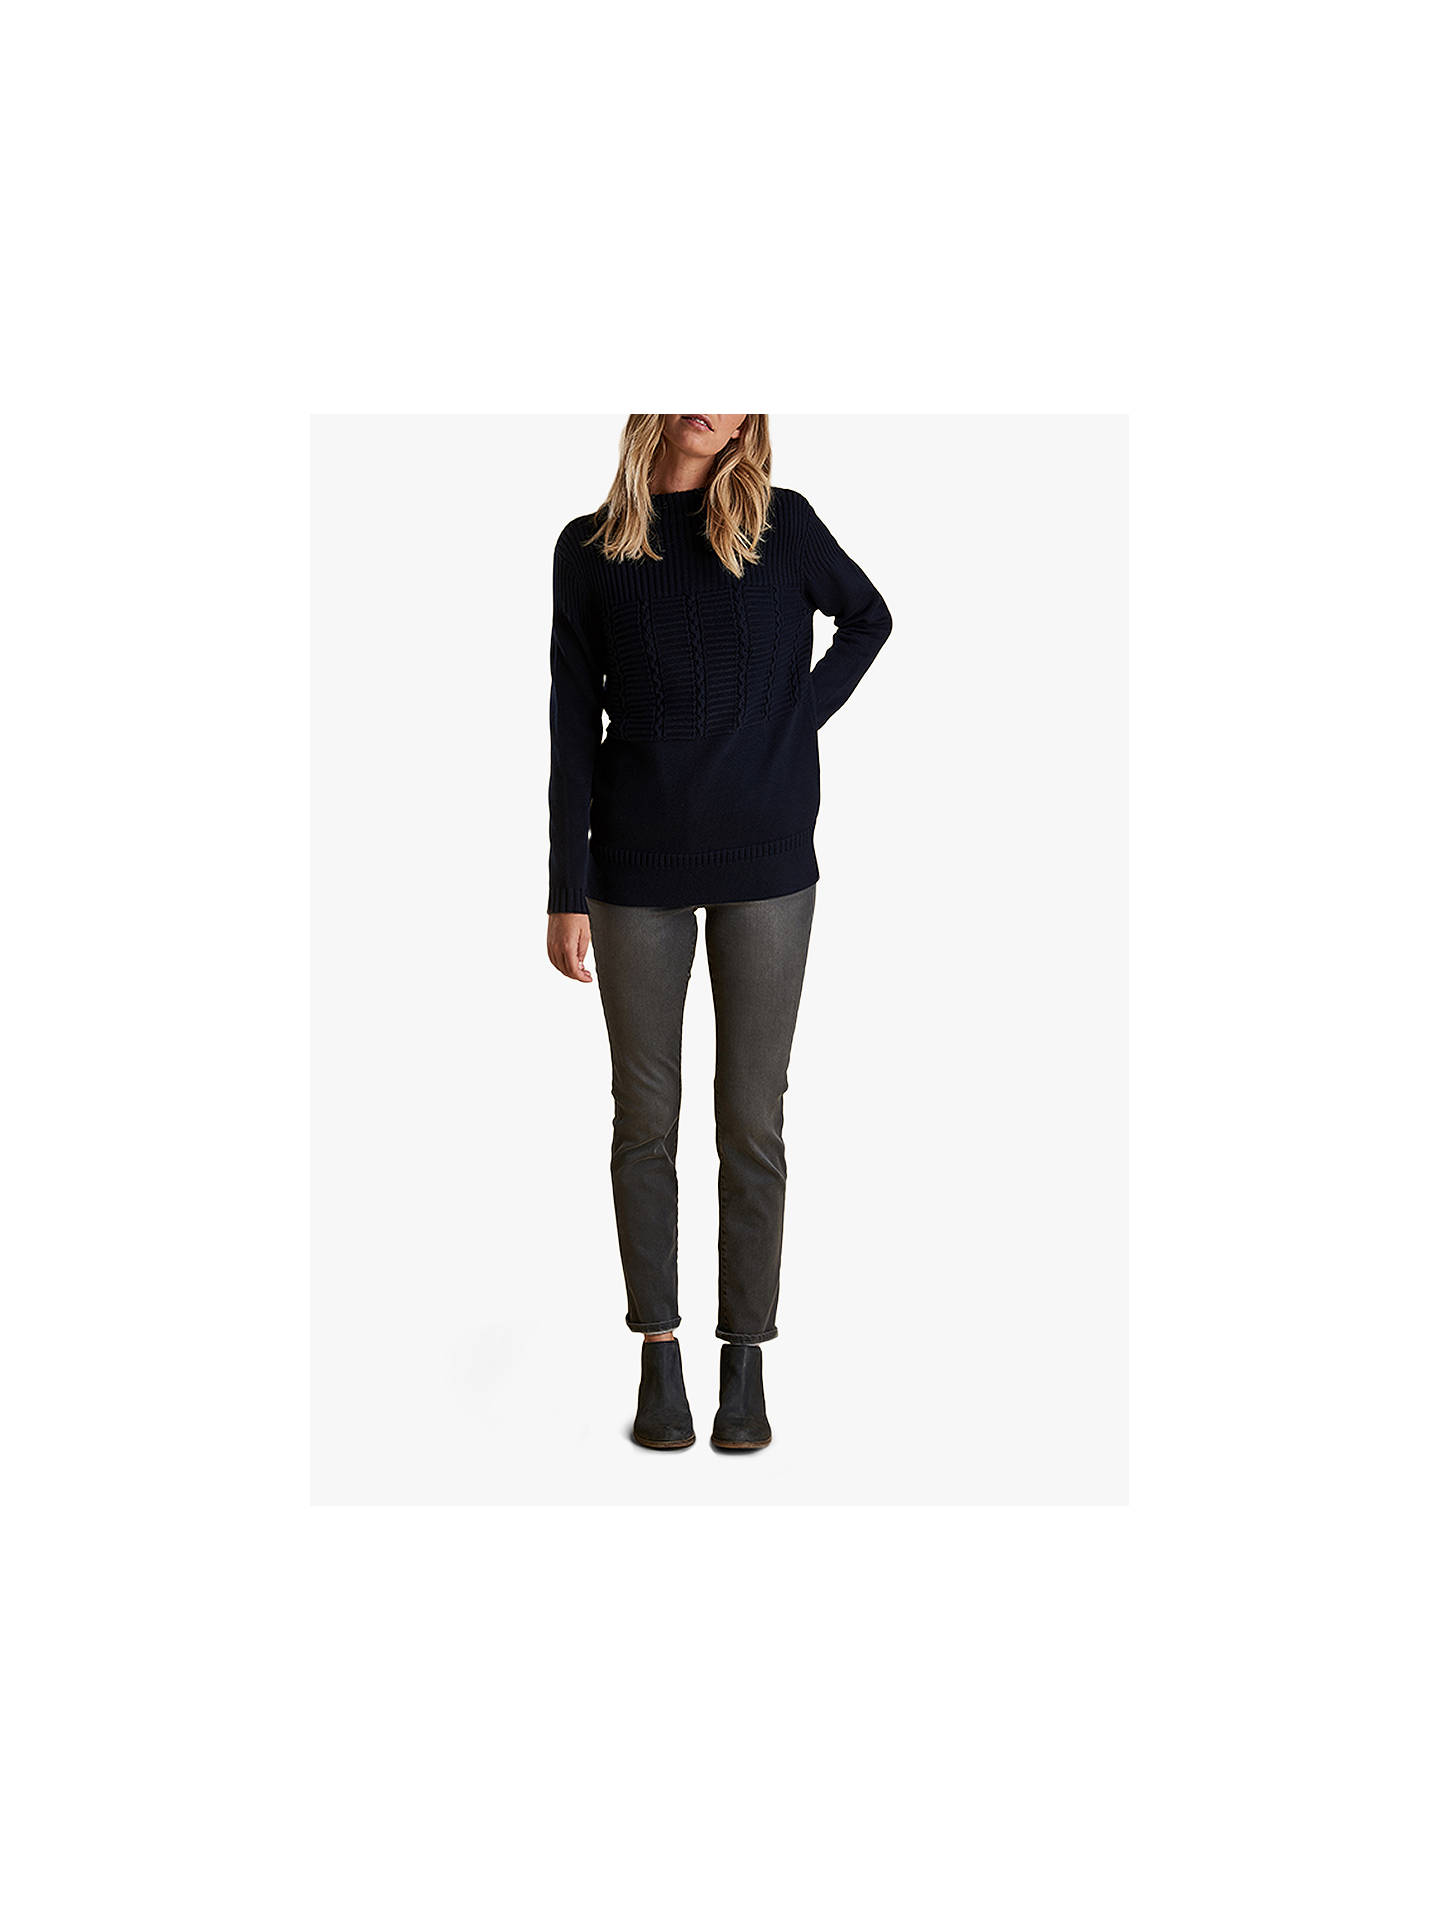 BuyBarbour Portsdown Textured Knit Jumper, Navy, 8 Online at johnlewis.com